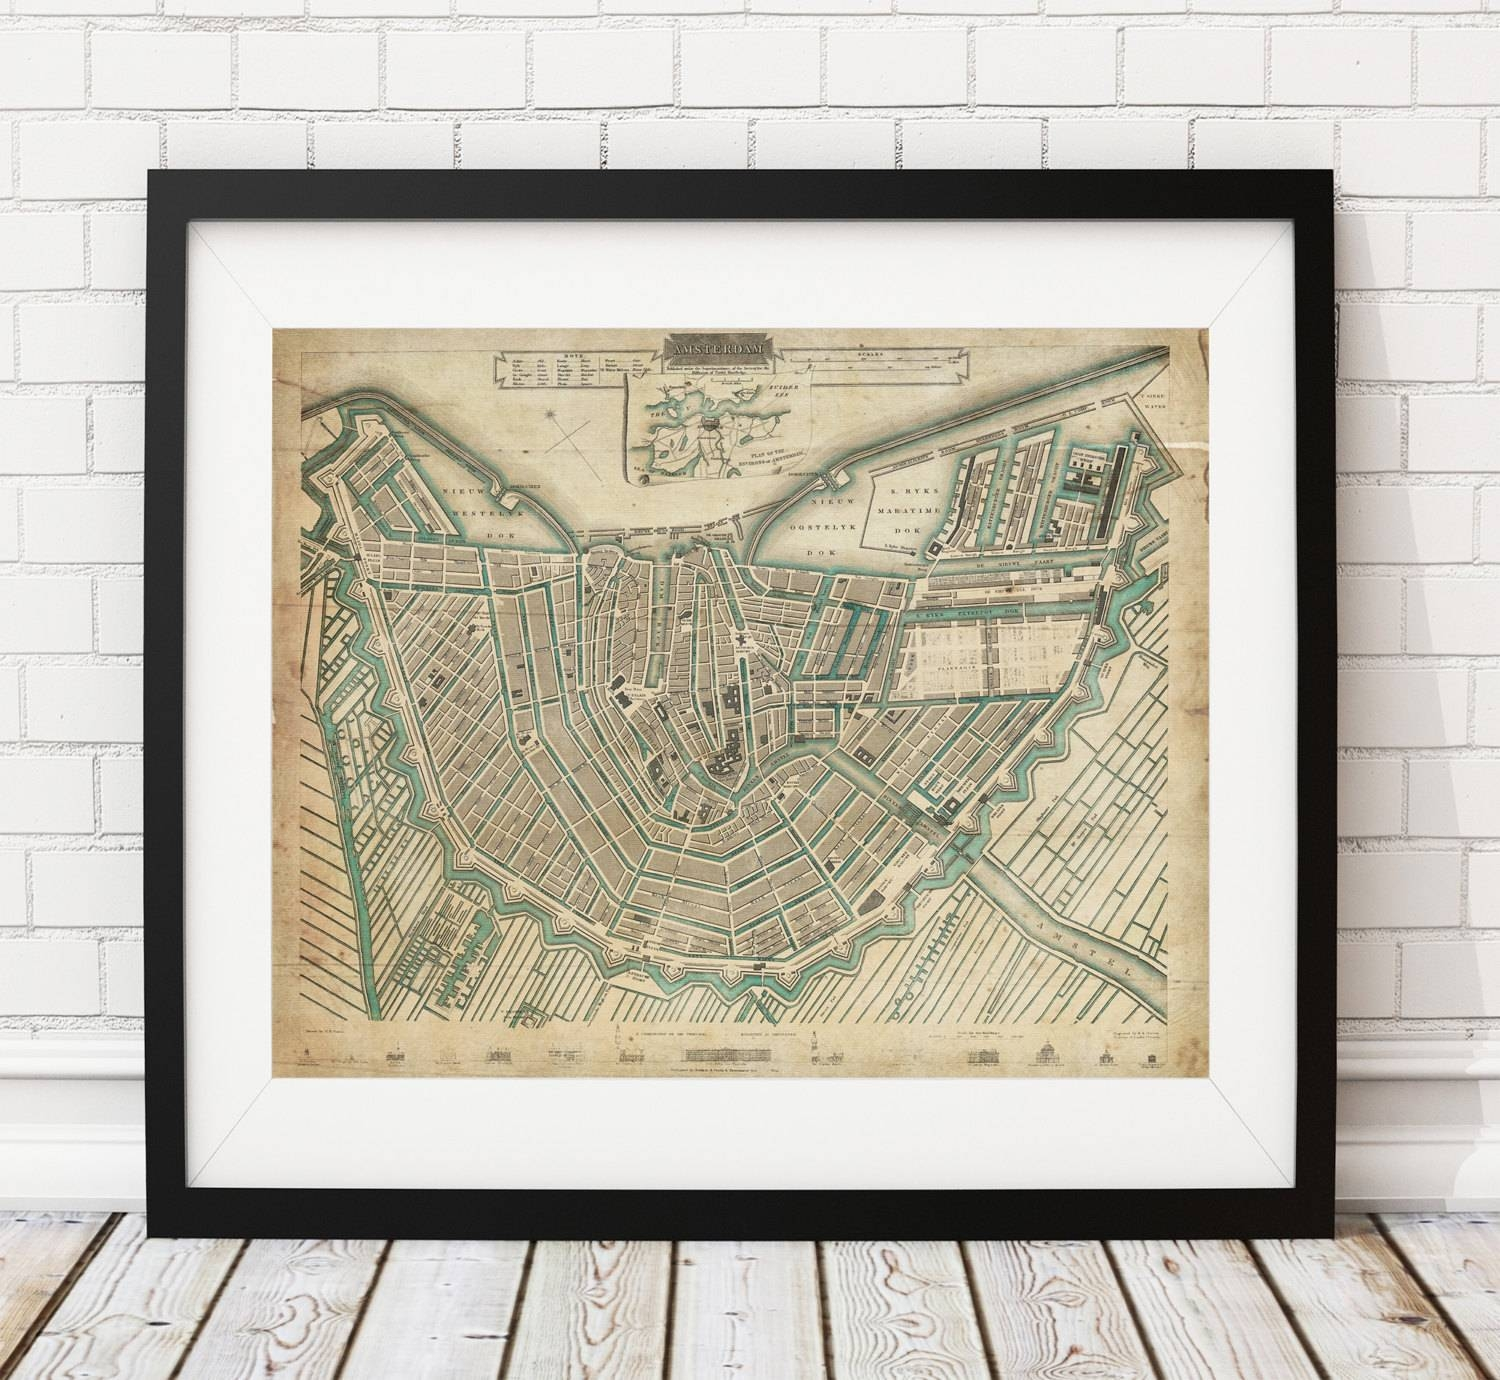 Amsterdam Map Print, Vintage Map Art, Antique Map, Wall Art Pertaining To Most Popular Vintage Map Wall Art (View 14 of 20)